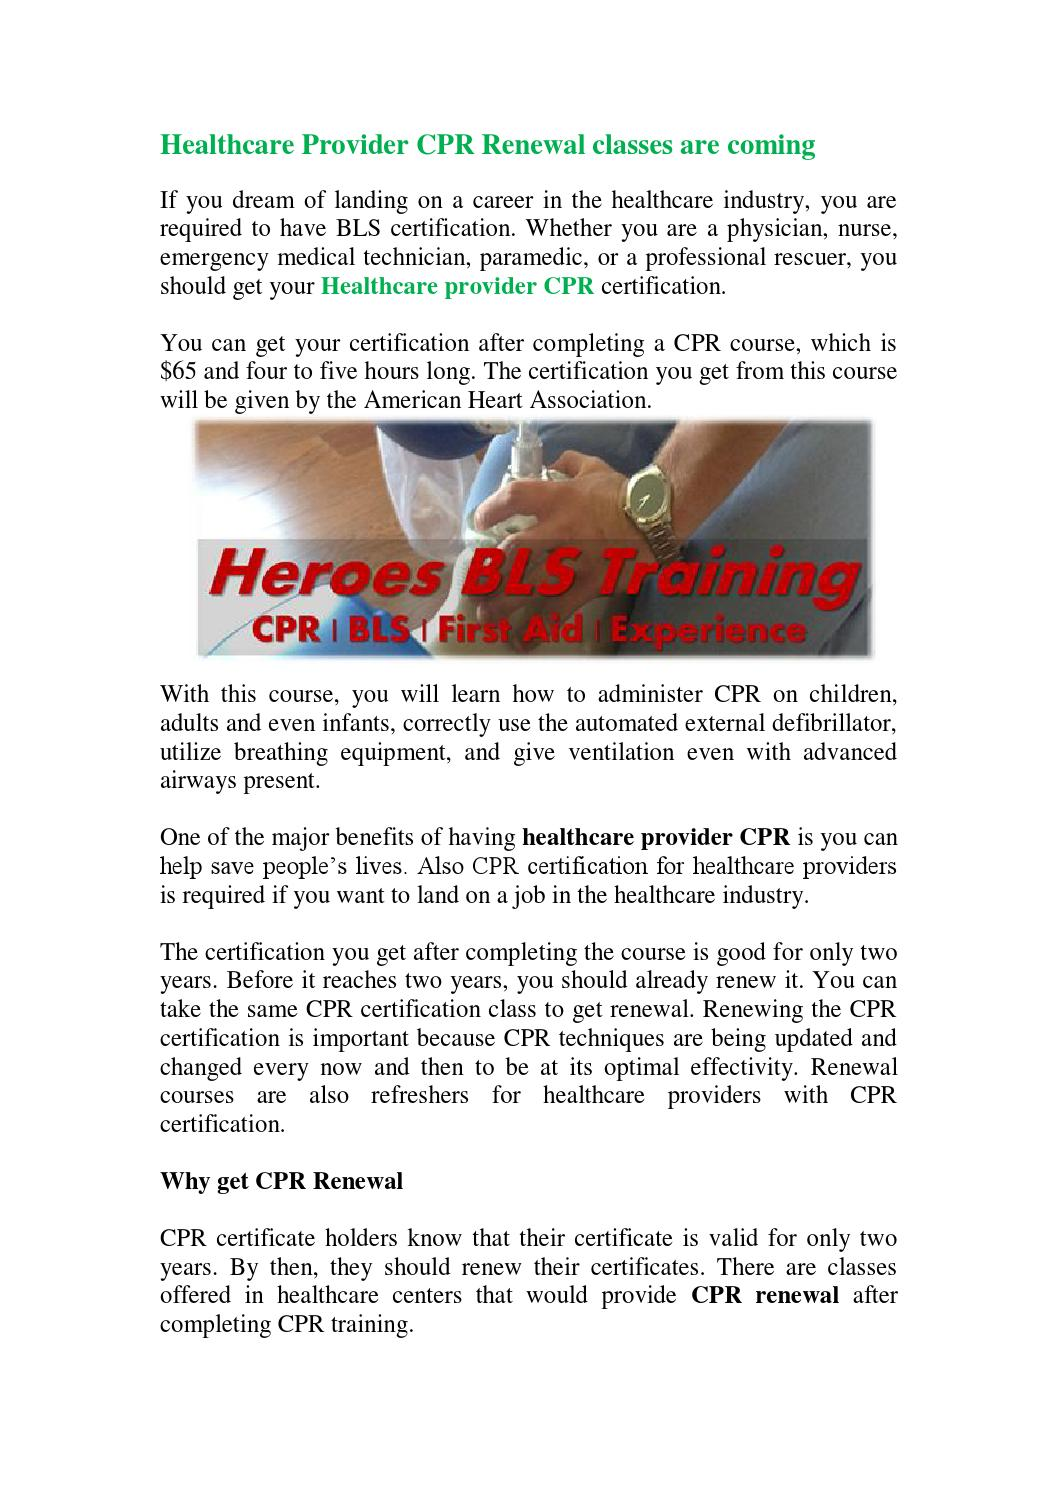 Healthcare Provider Cpr Renewal Classes Are Coming By Thomas